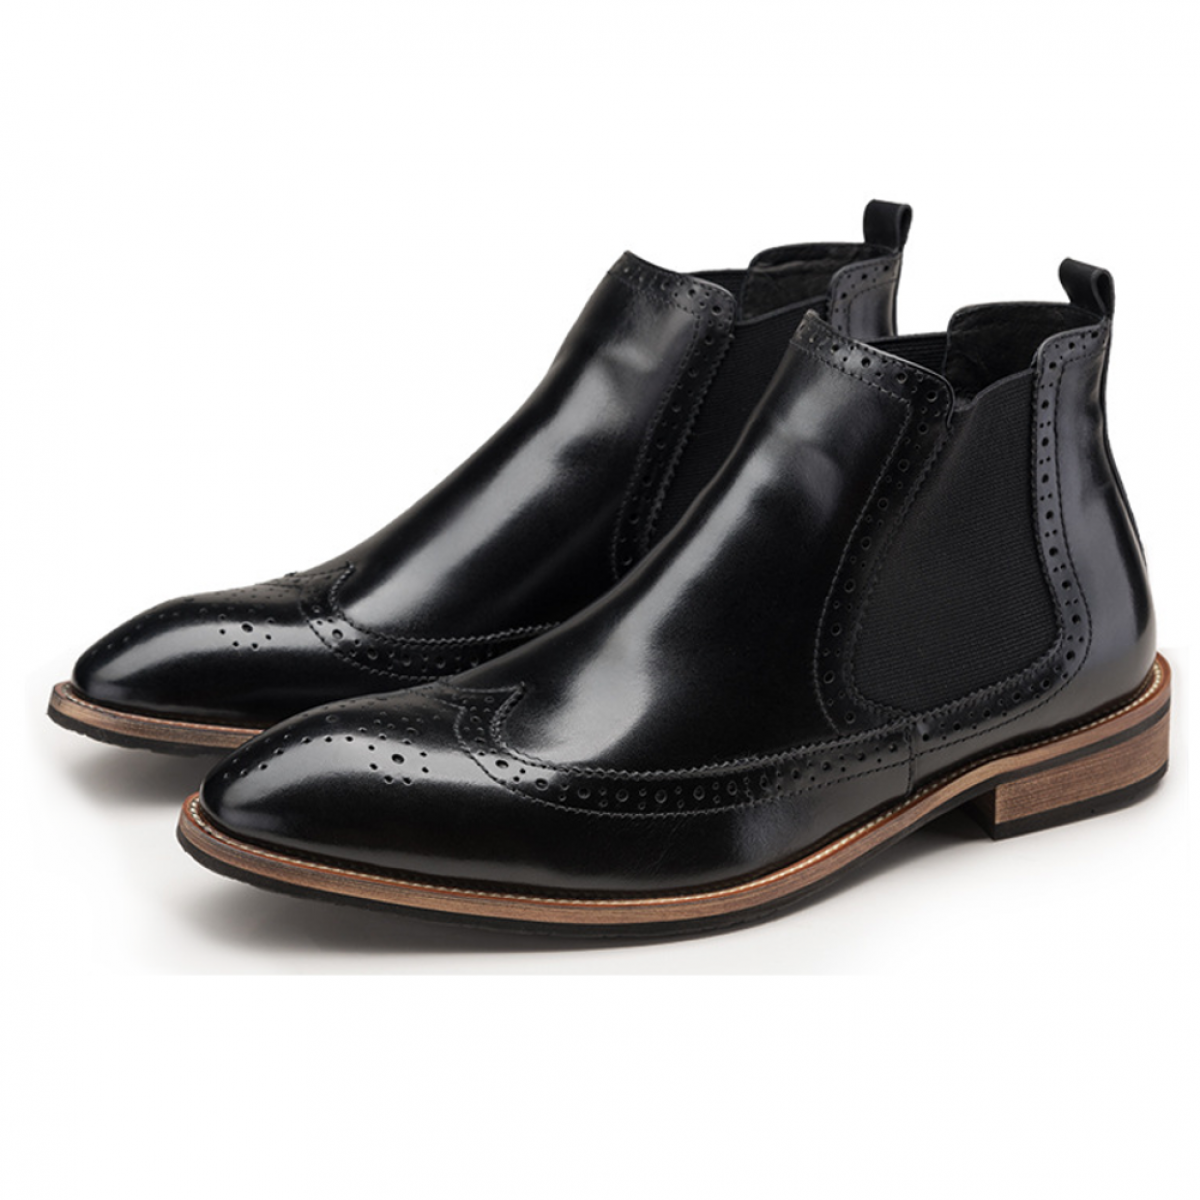 black leather chelsea boot leather sole sizes 6 5 10 laticci